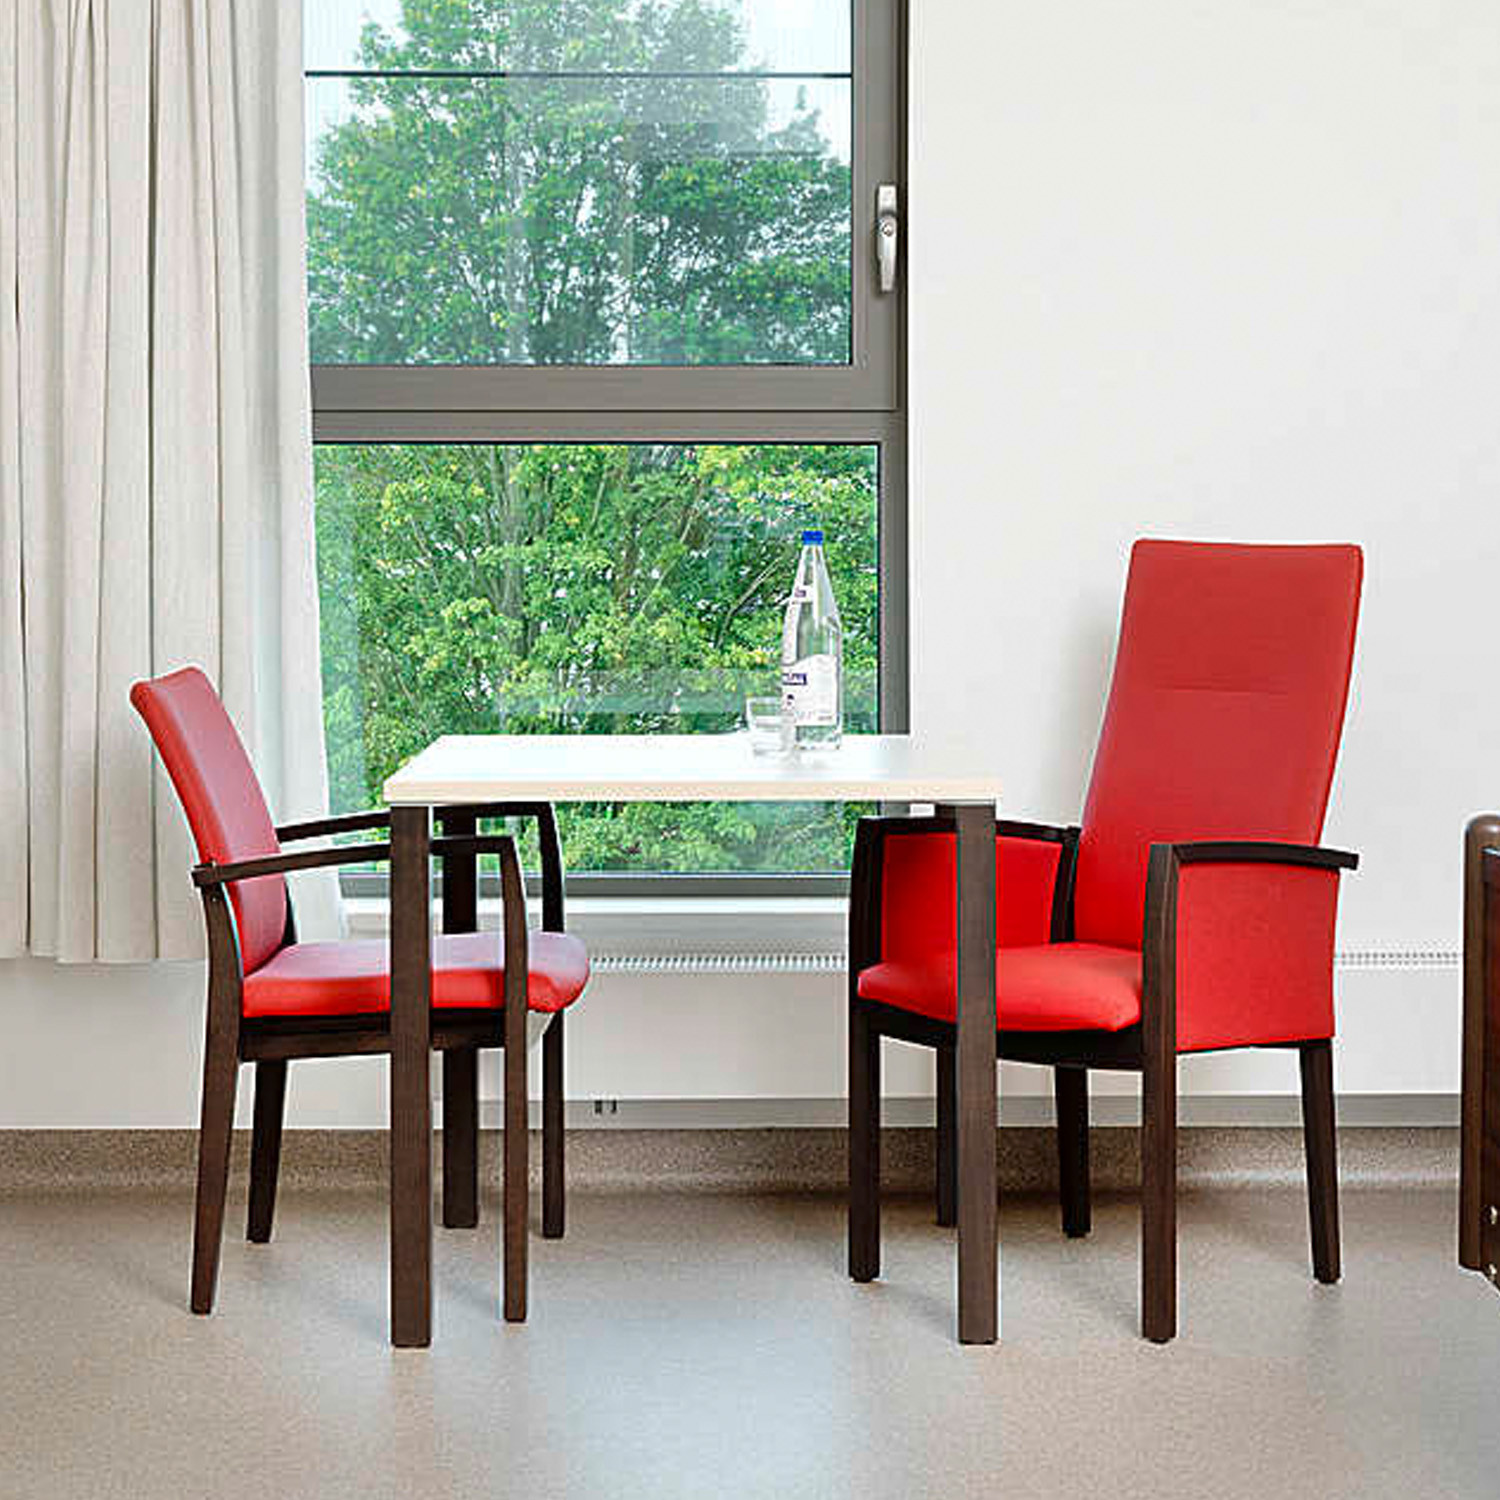 3700 Palato ArmchaIrs are available with upholstered and non upholstered armrests